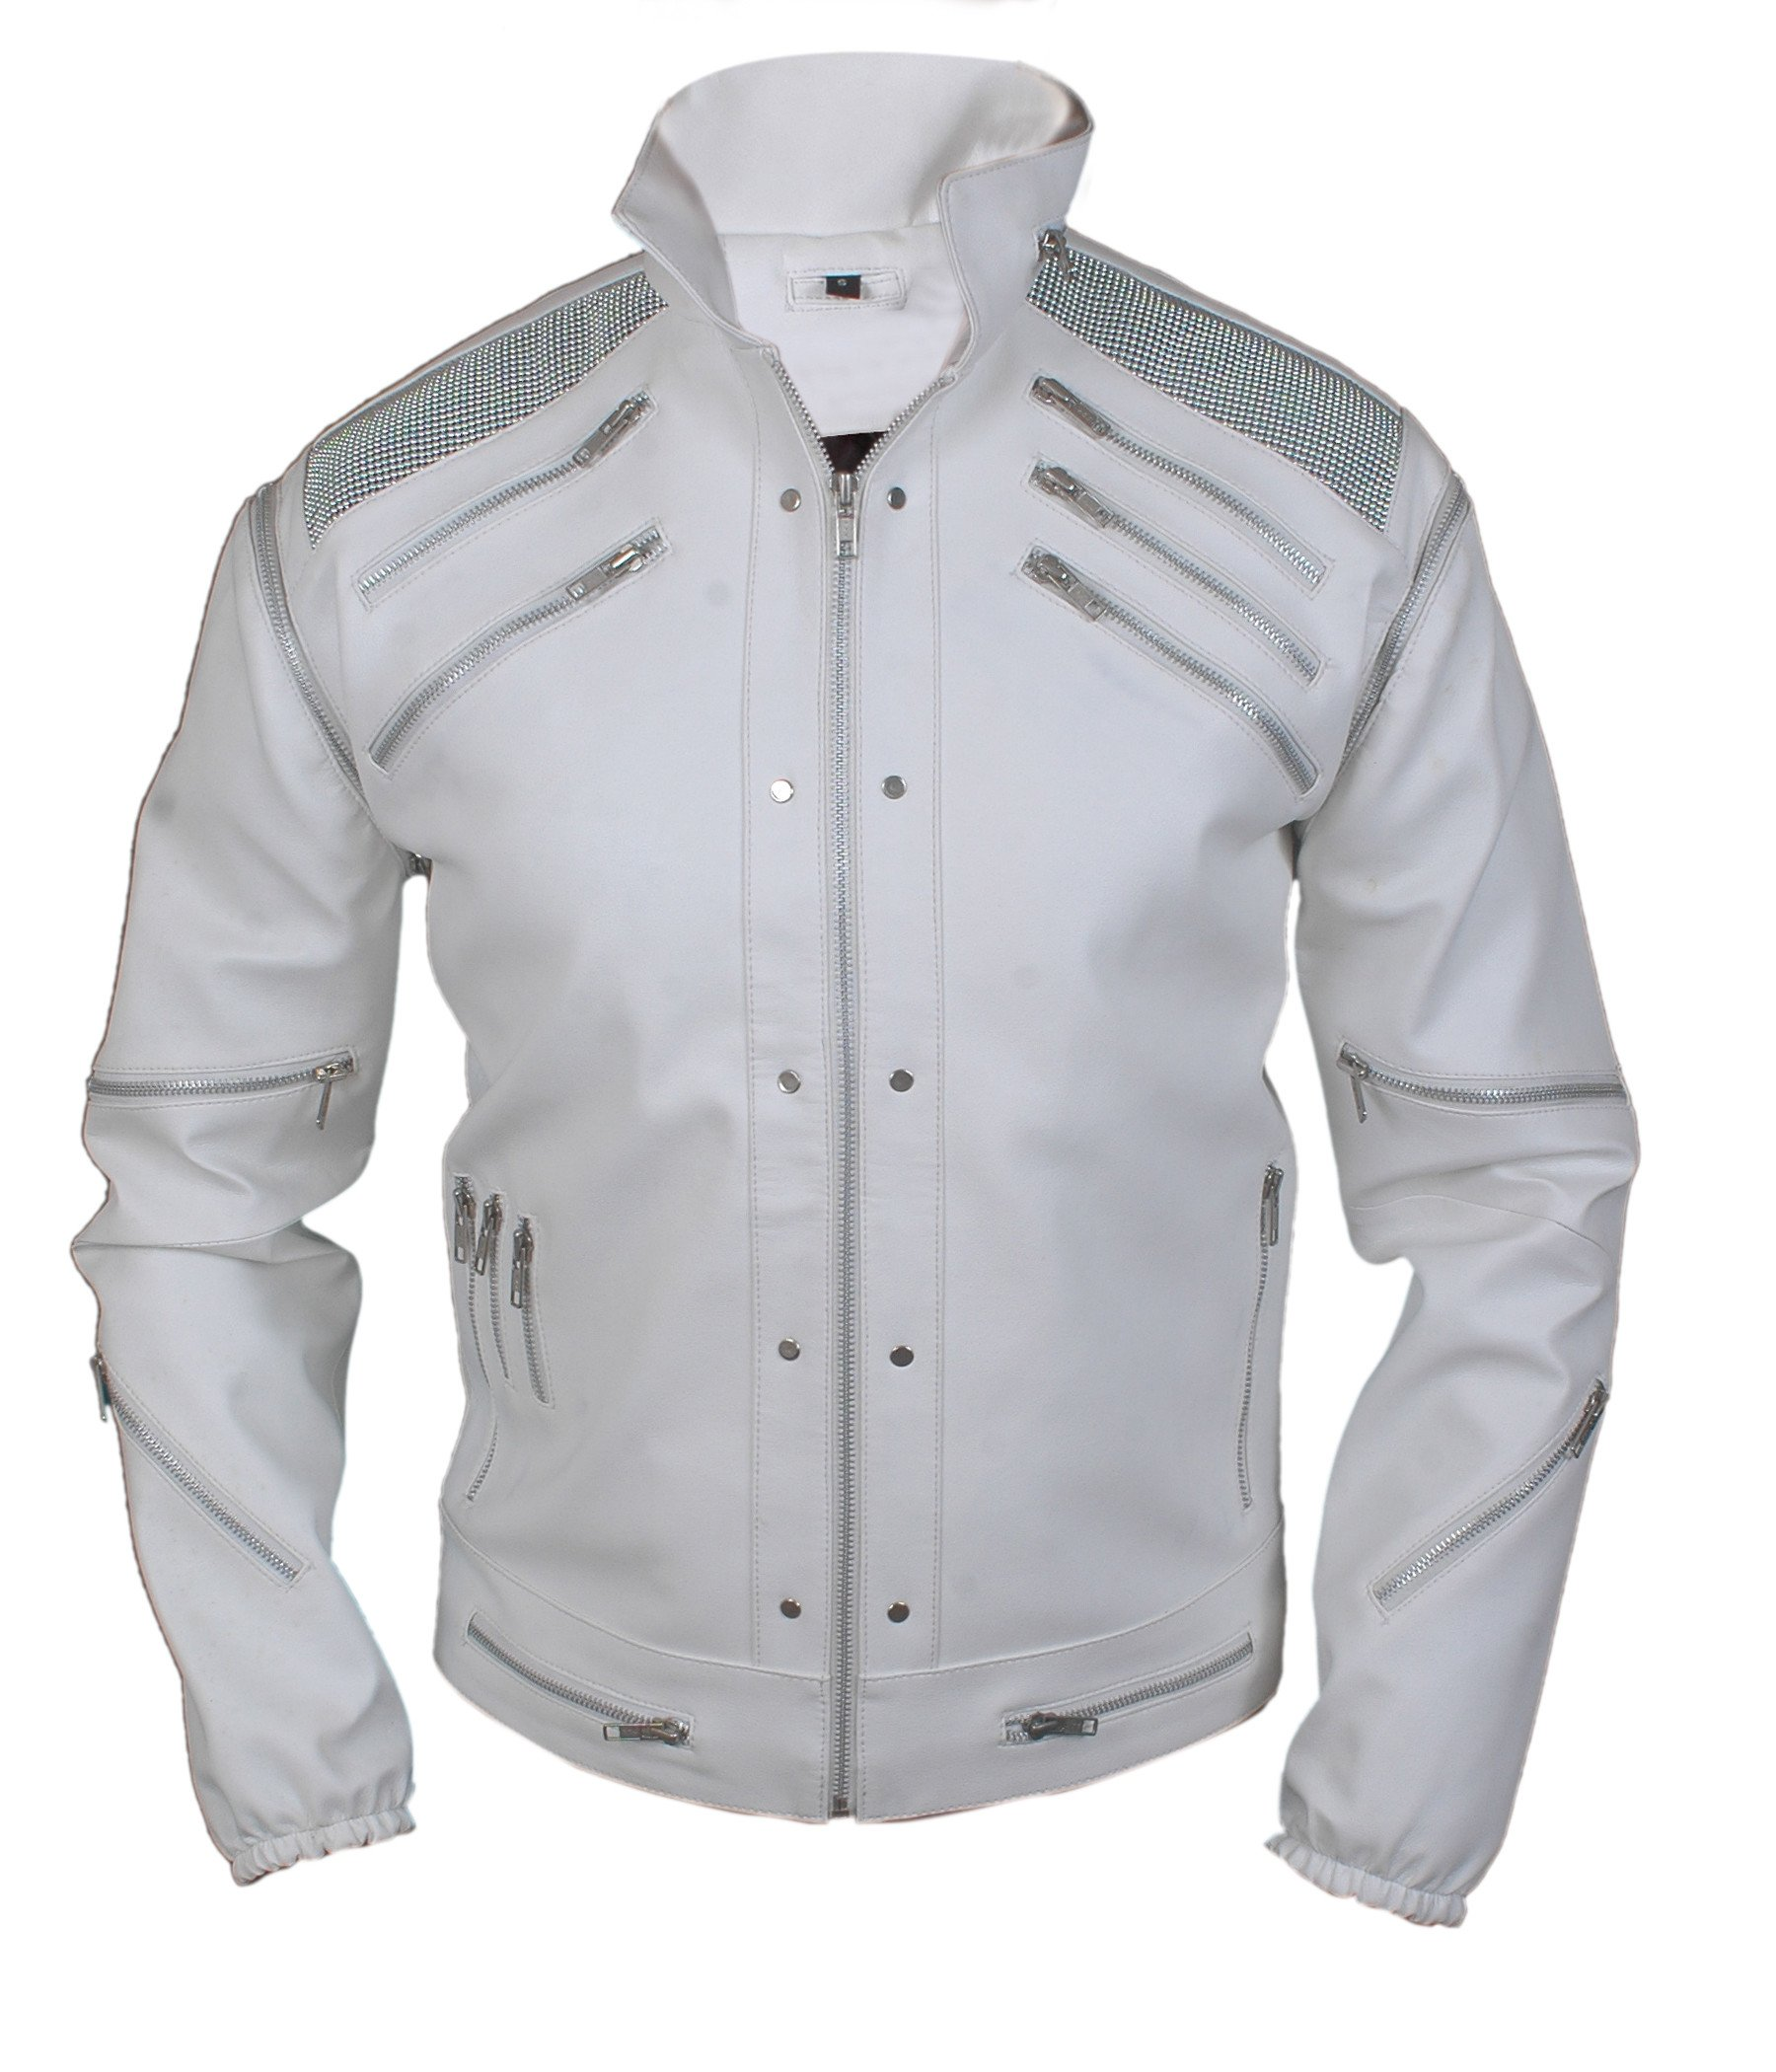 F&H Boy's Michael Jackson Beat It Genuine Leather Jacket XL White by Flesh & Hide